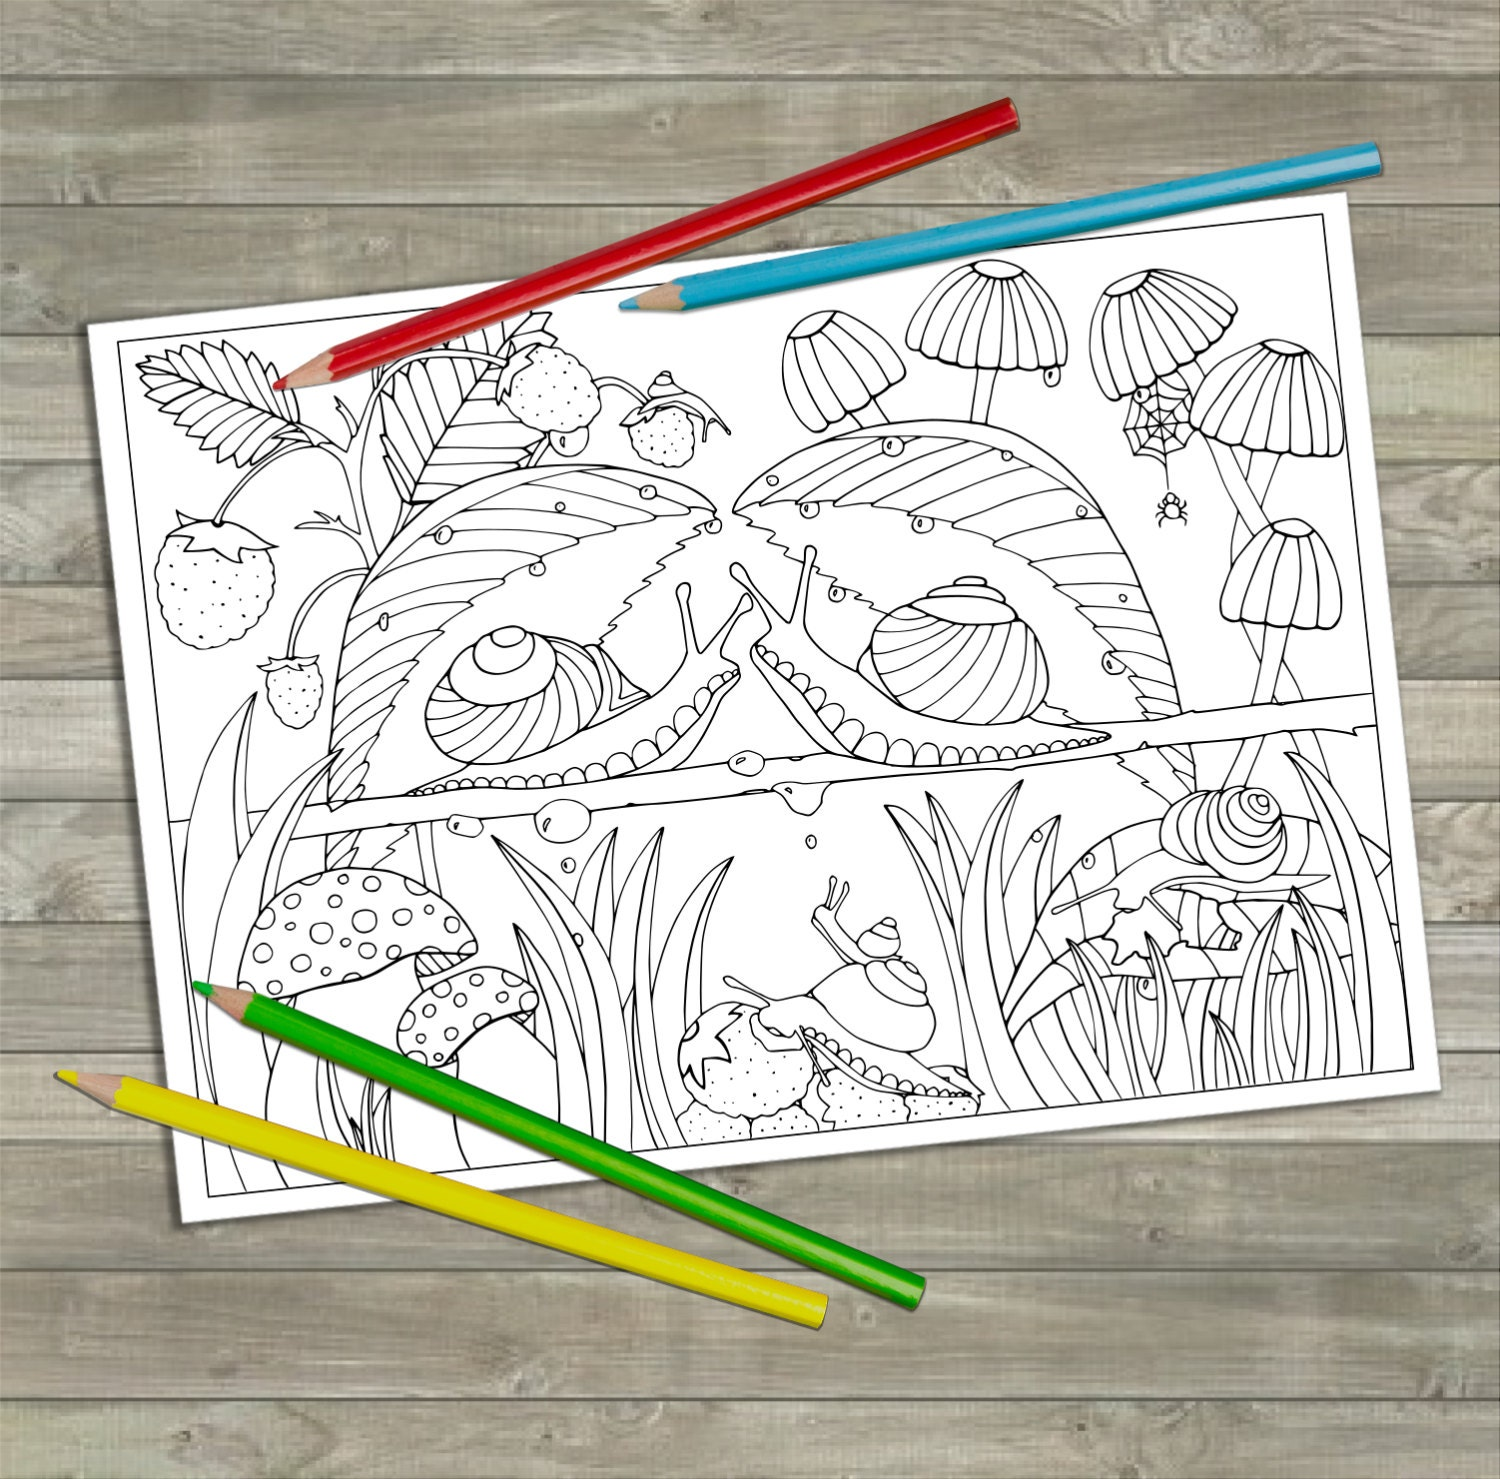 electronic coloring book for adults printable snails colouring page digital download coloring